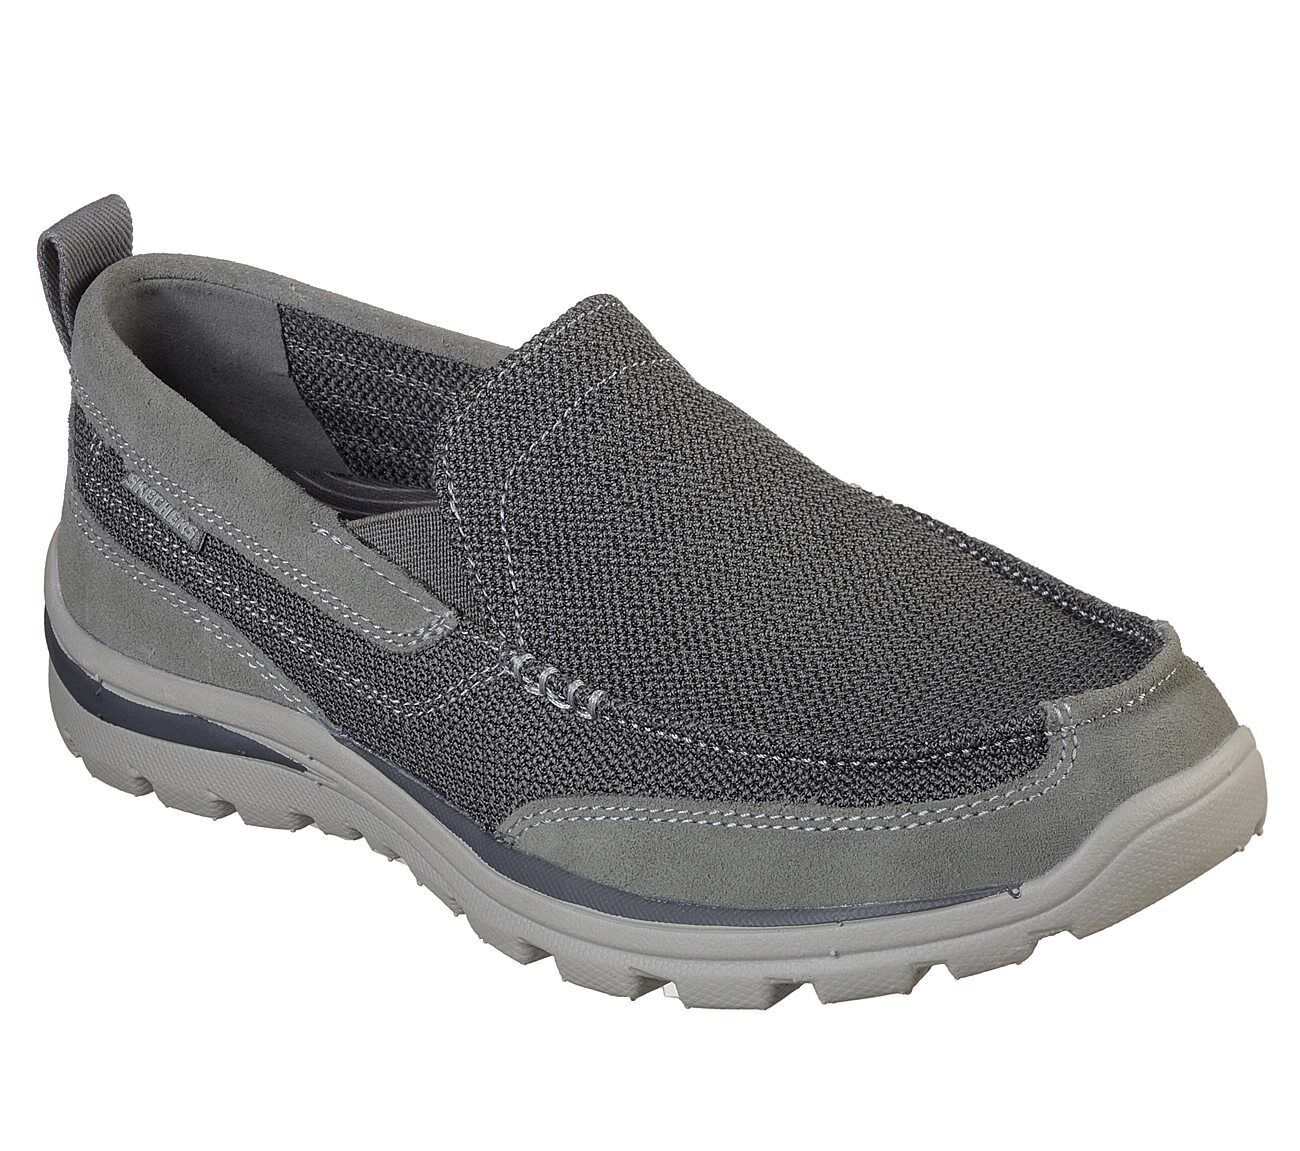 Skechers Relaxed Fit: Superior - Milford Schuhes  64365 Uomo Memory Foam Trainers 64365  5d72fe